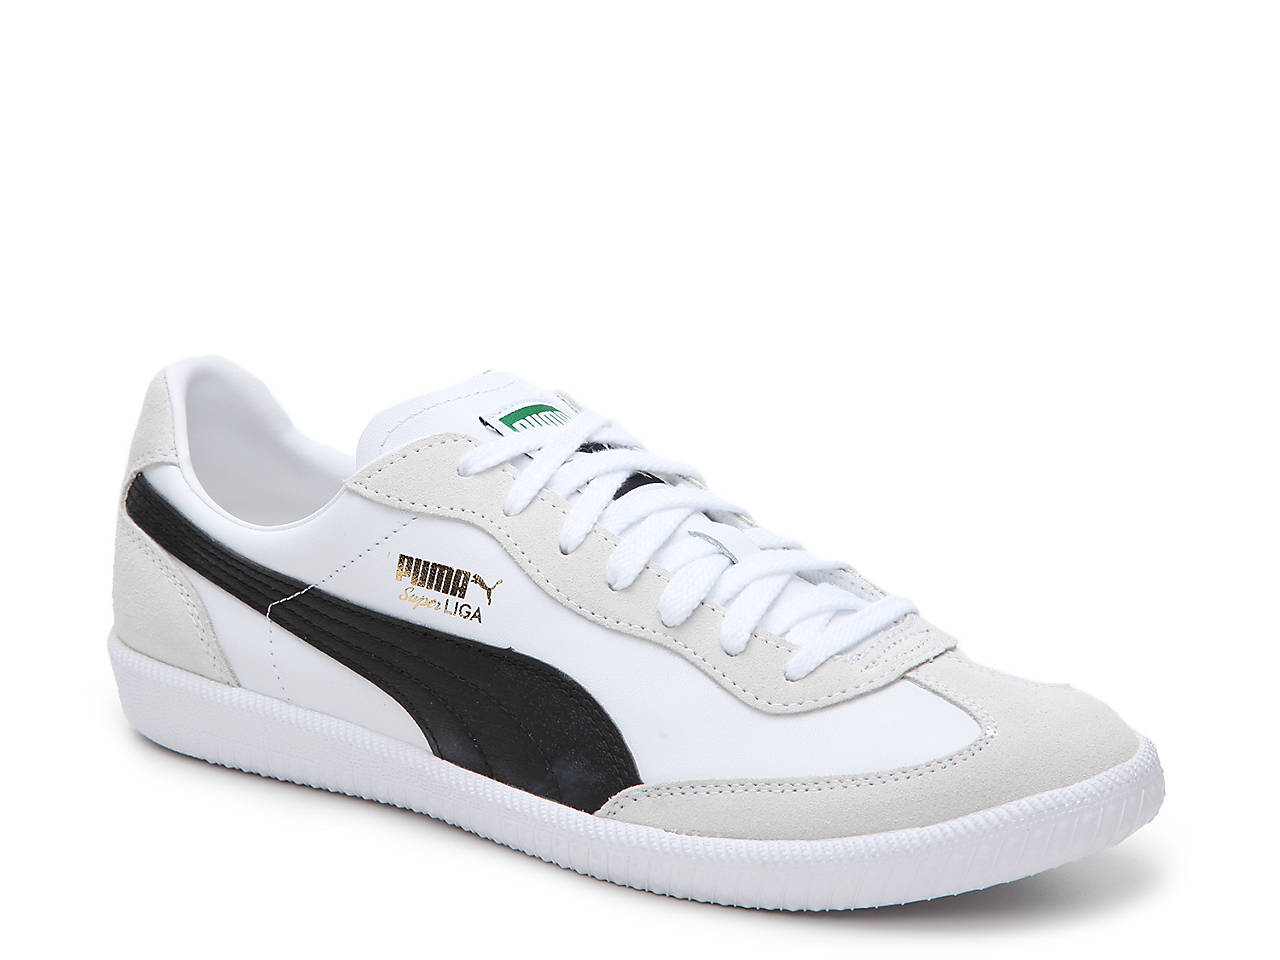 91a9abbac0bb ... Blue Marshmellow  Super Liga OG Retro Sneaker - Mens  Image of PUMA ...